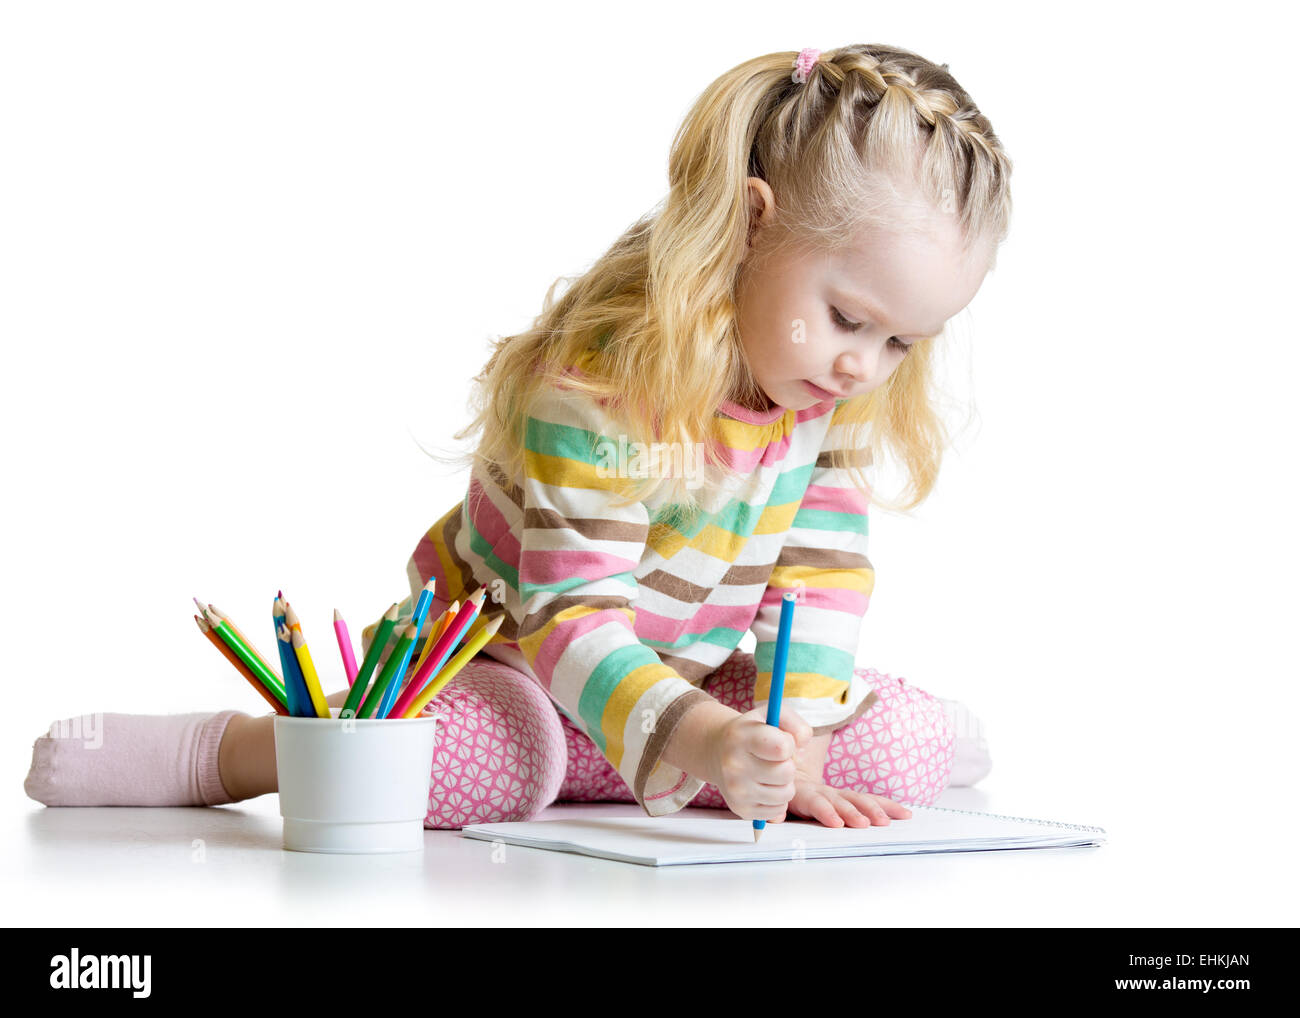 Cheerful child girl drawing with pencils in preschool - Stock Image